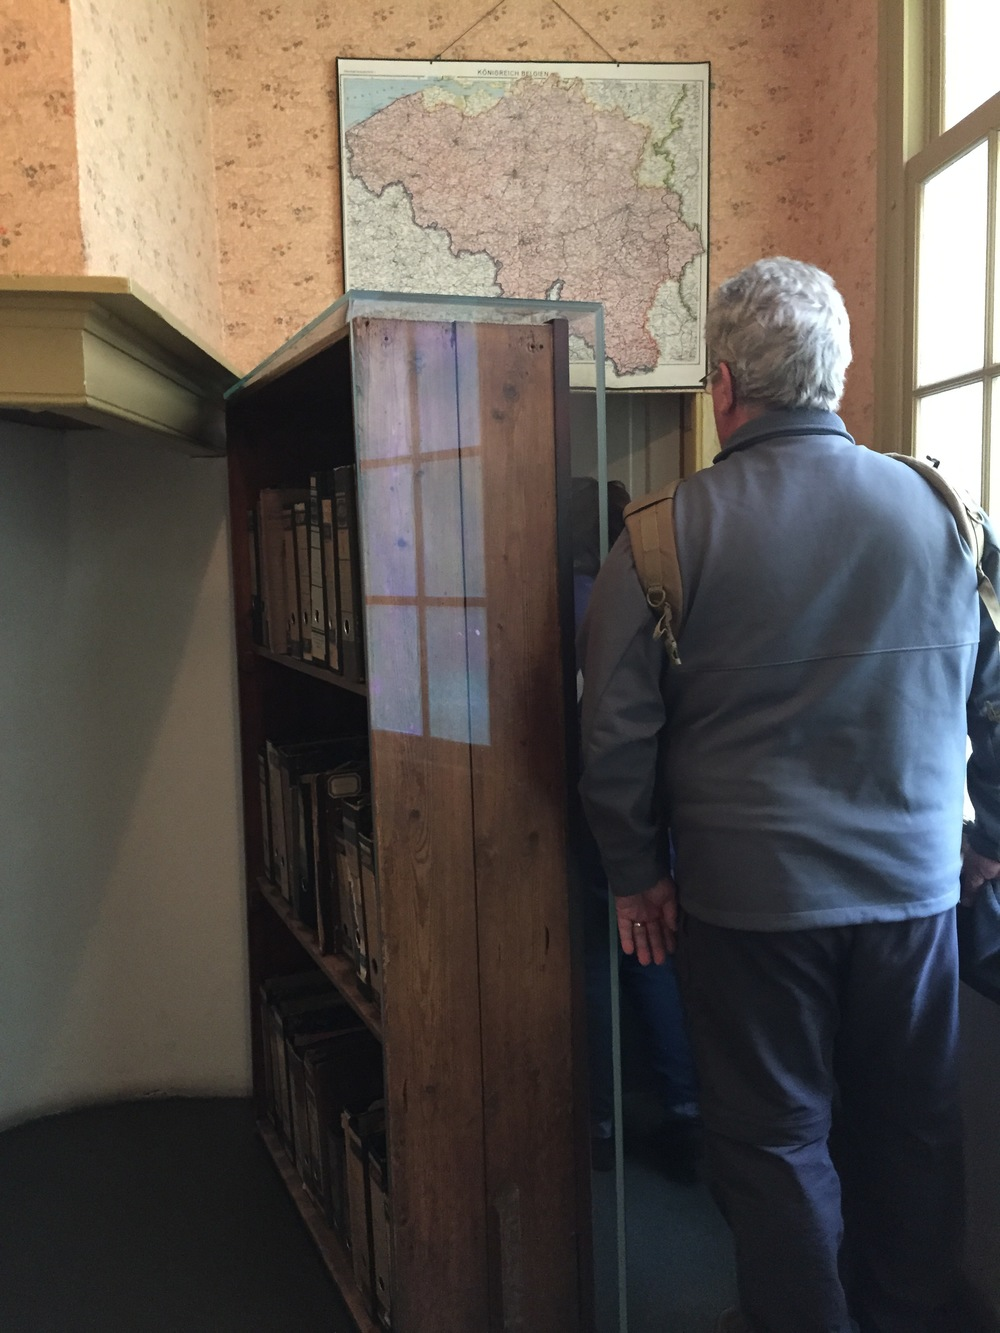 This was the ACTUAL bookcase that was a fake entryway into the Secret Annex upstairs. So cool that it was preserved. And also, this guy kept hitting people with his bag! HAHA!